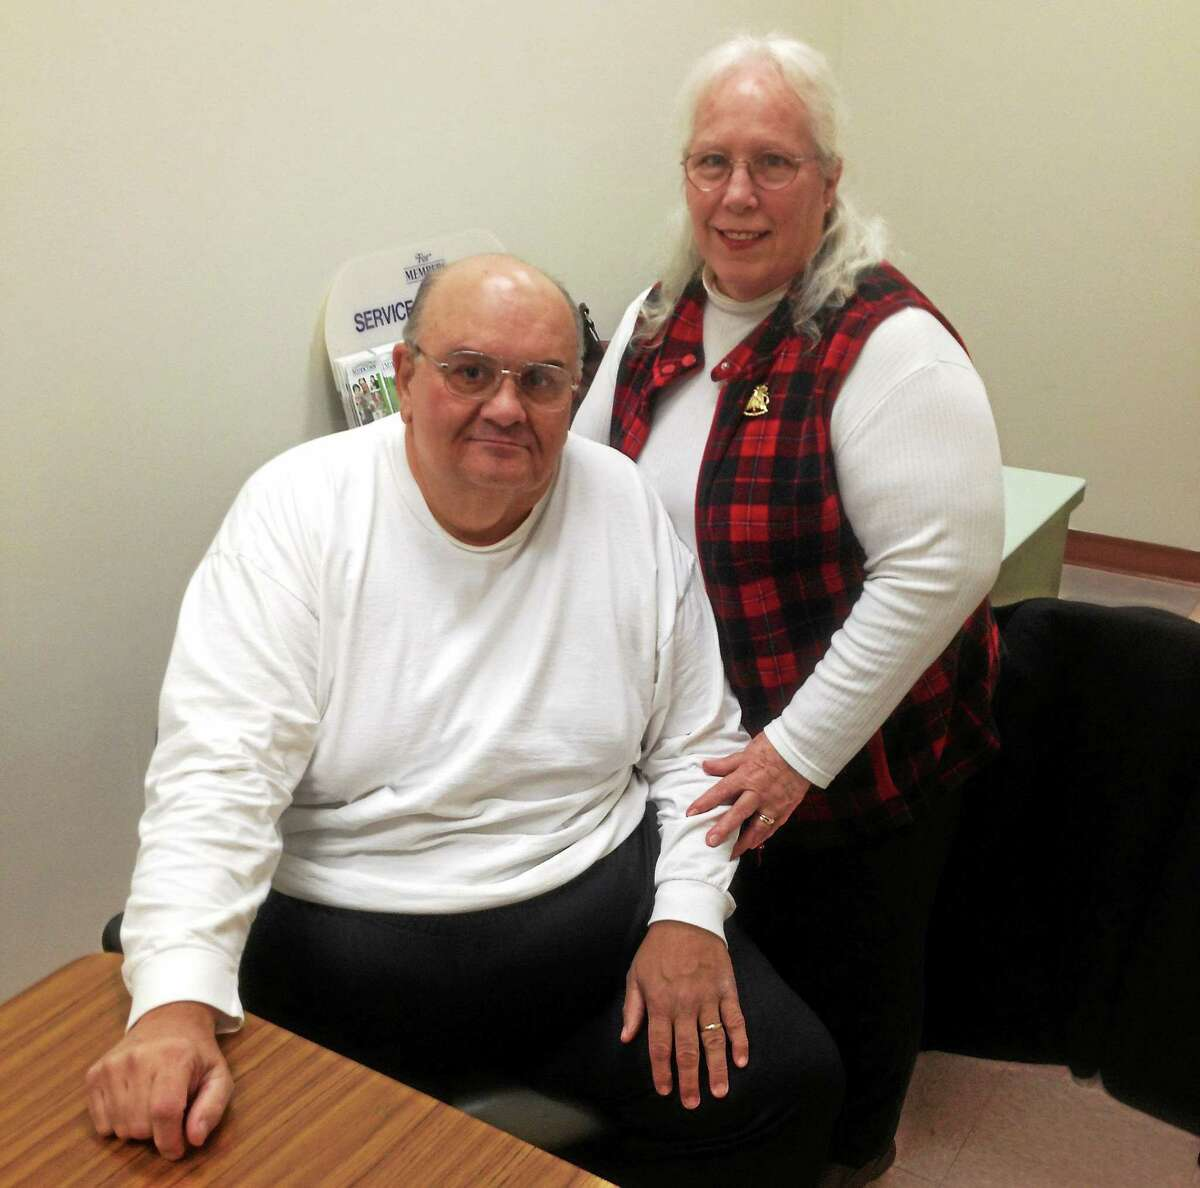 John and Judy own and operate WCNX radio, a low-power AM station that broadcasts oldies from the '60's and '70's both on the air and online from Middletown.